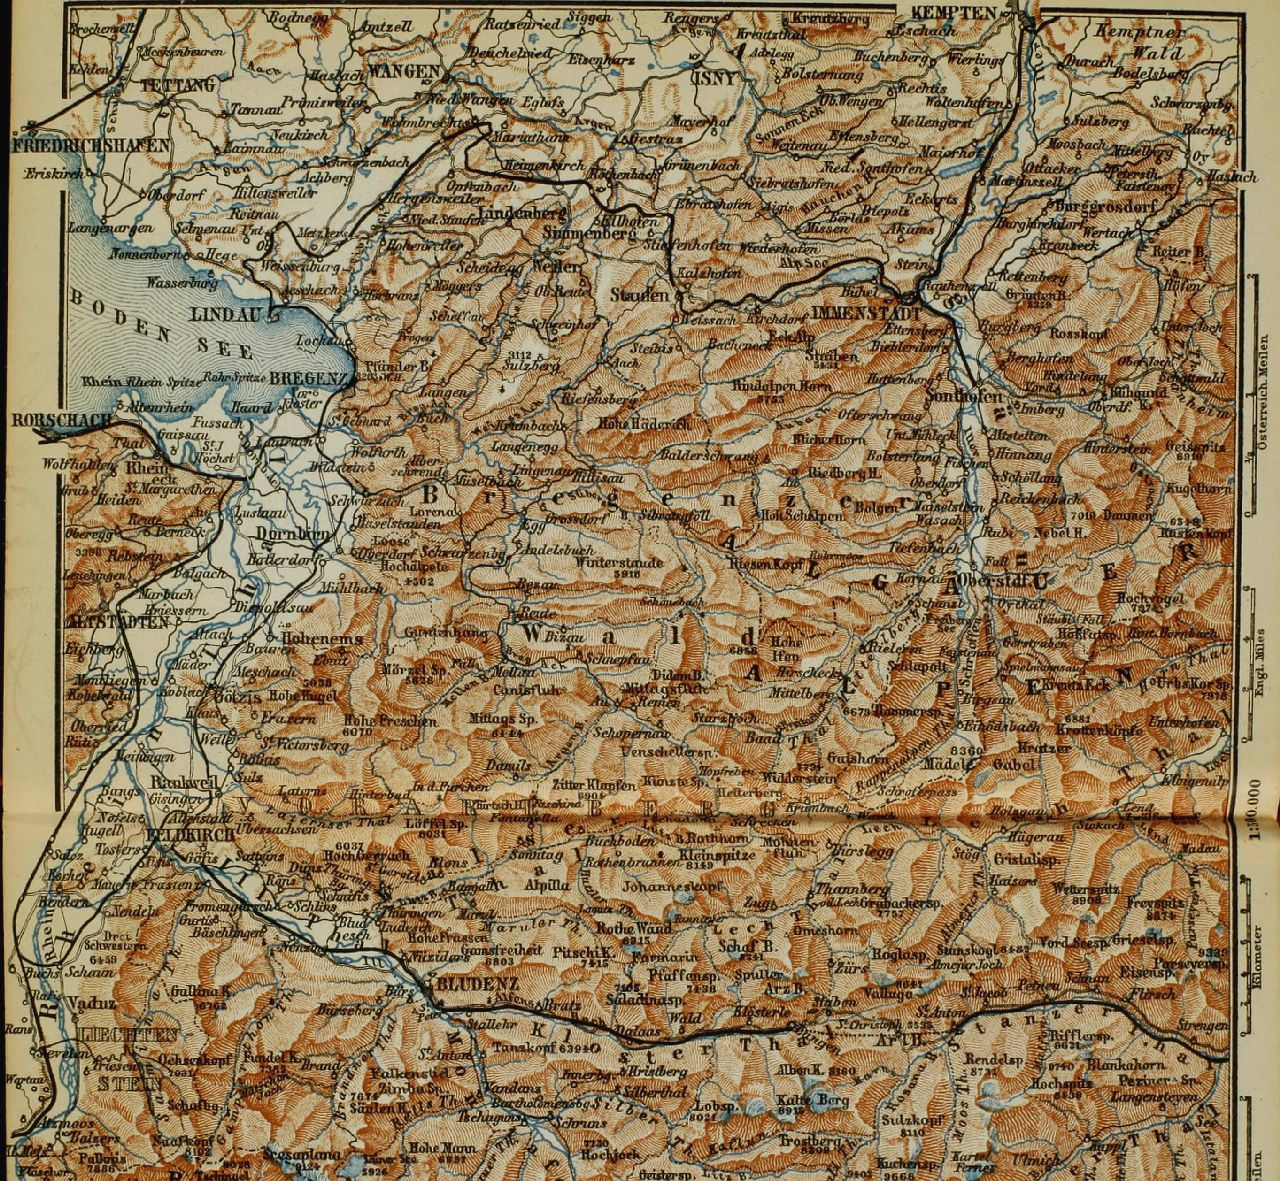 the eastern alps-map-book-internet archive-Image from page 280 of The eastern Alps including the Bavarian highlands, Tyrol, Salzkammergut, Sty 14780779094